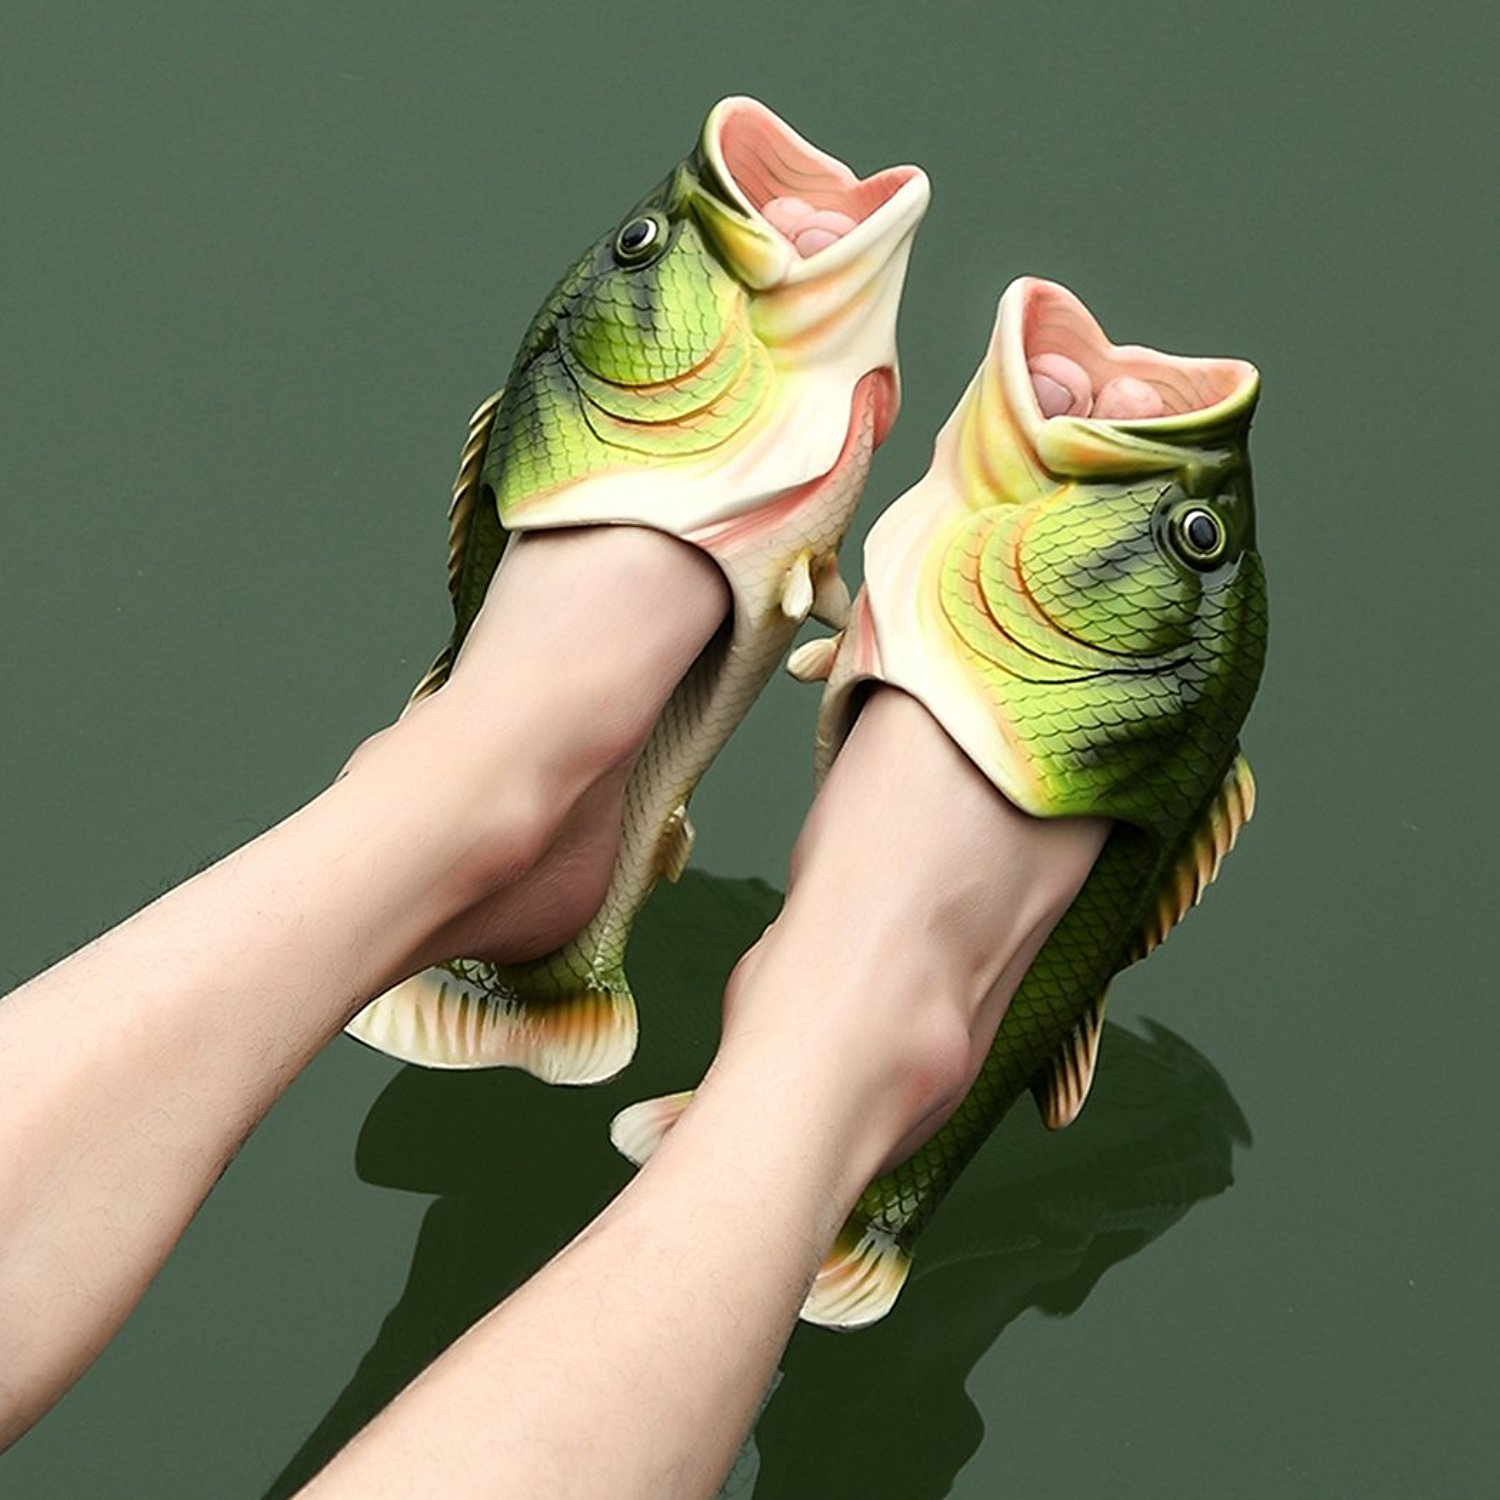 chausson-sandales-poissons-3